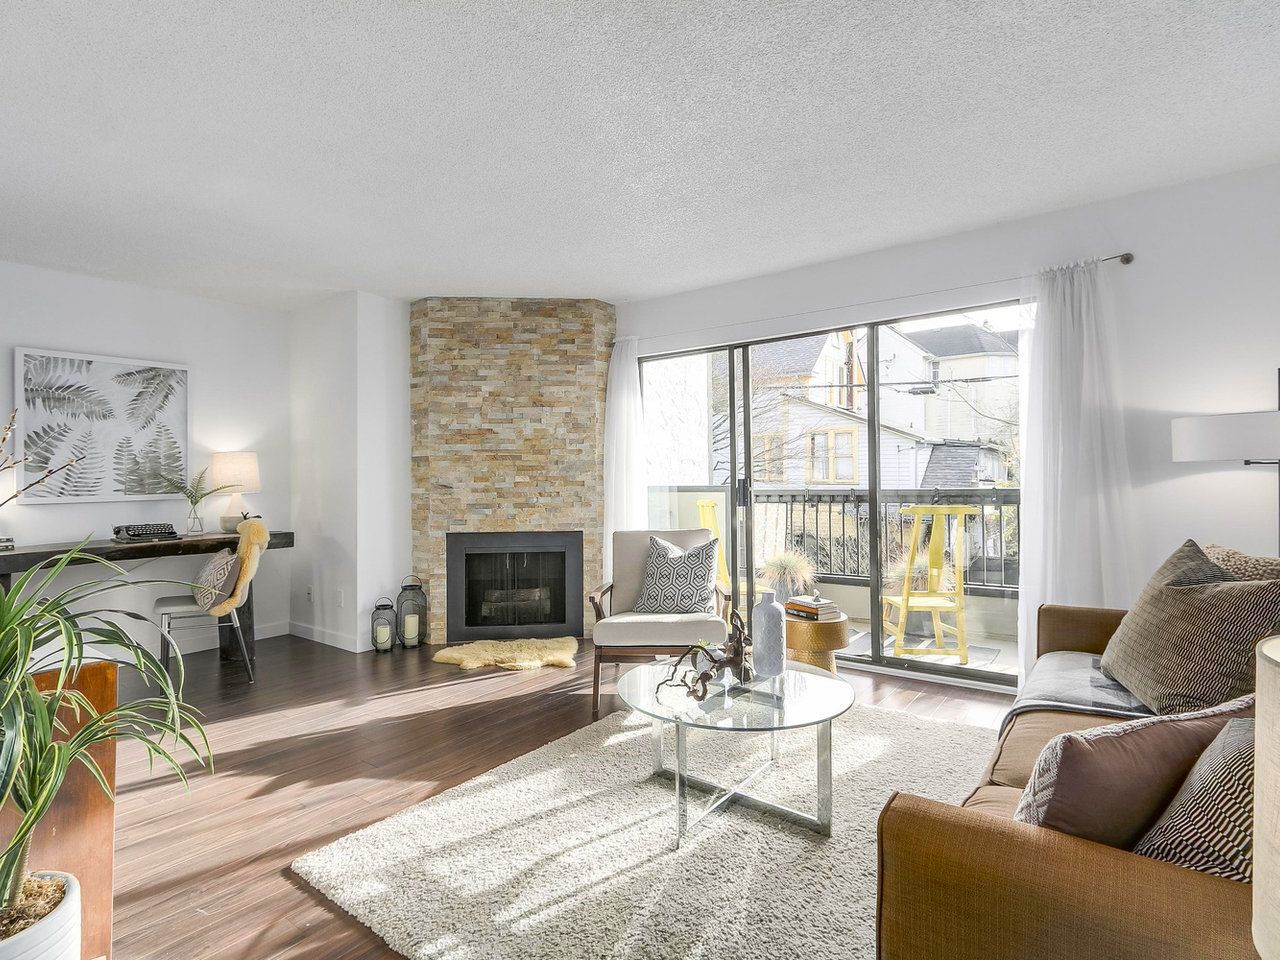 """Main Photo: 208 1484 CHARLES Street in Vancouver: Grandview VE Condo for sale in """"Landmark Arms"""" (Vancouver East)  : MLS®# R2235099"""